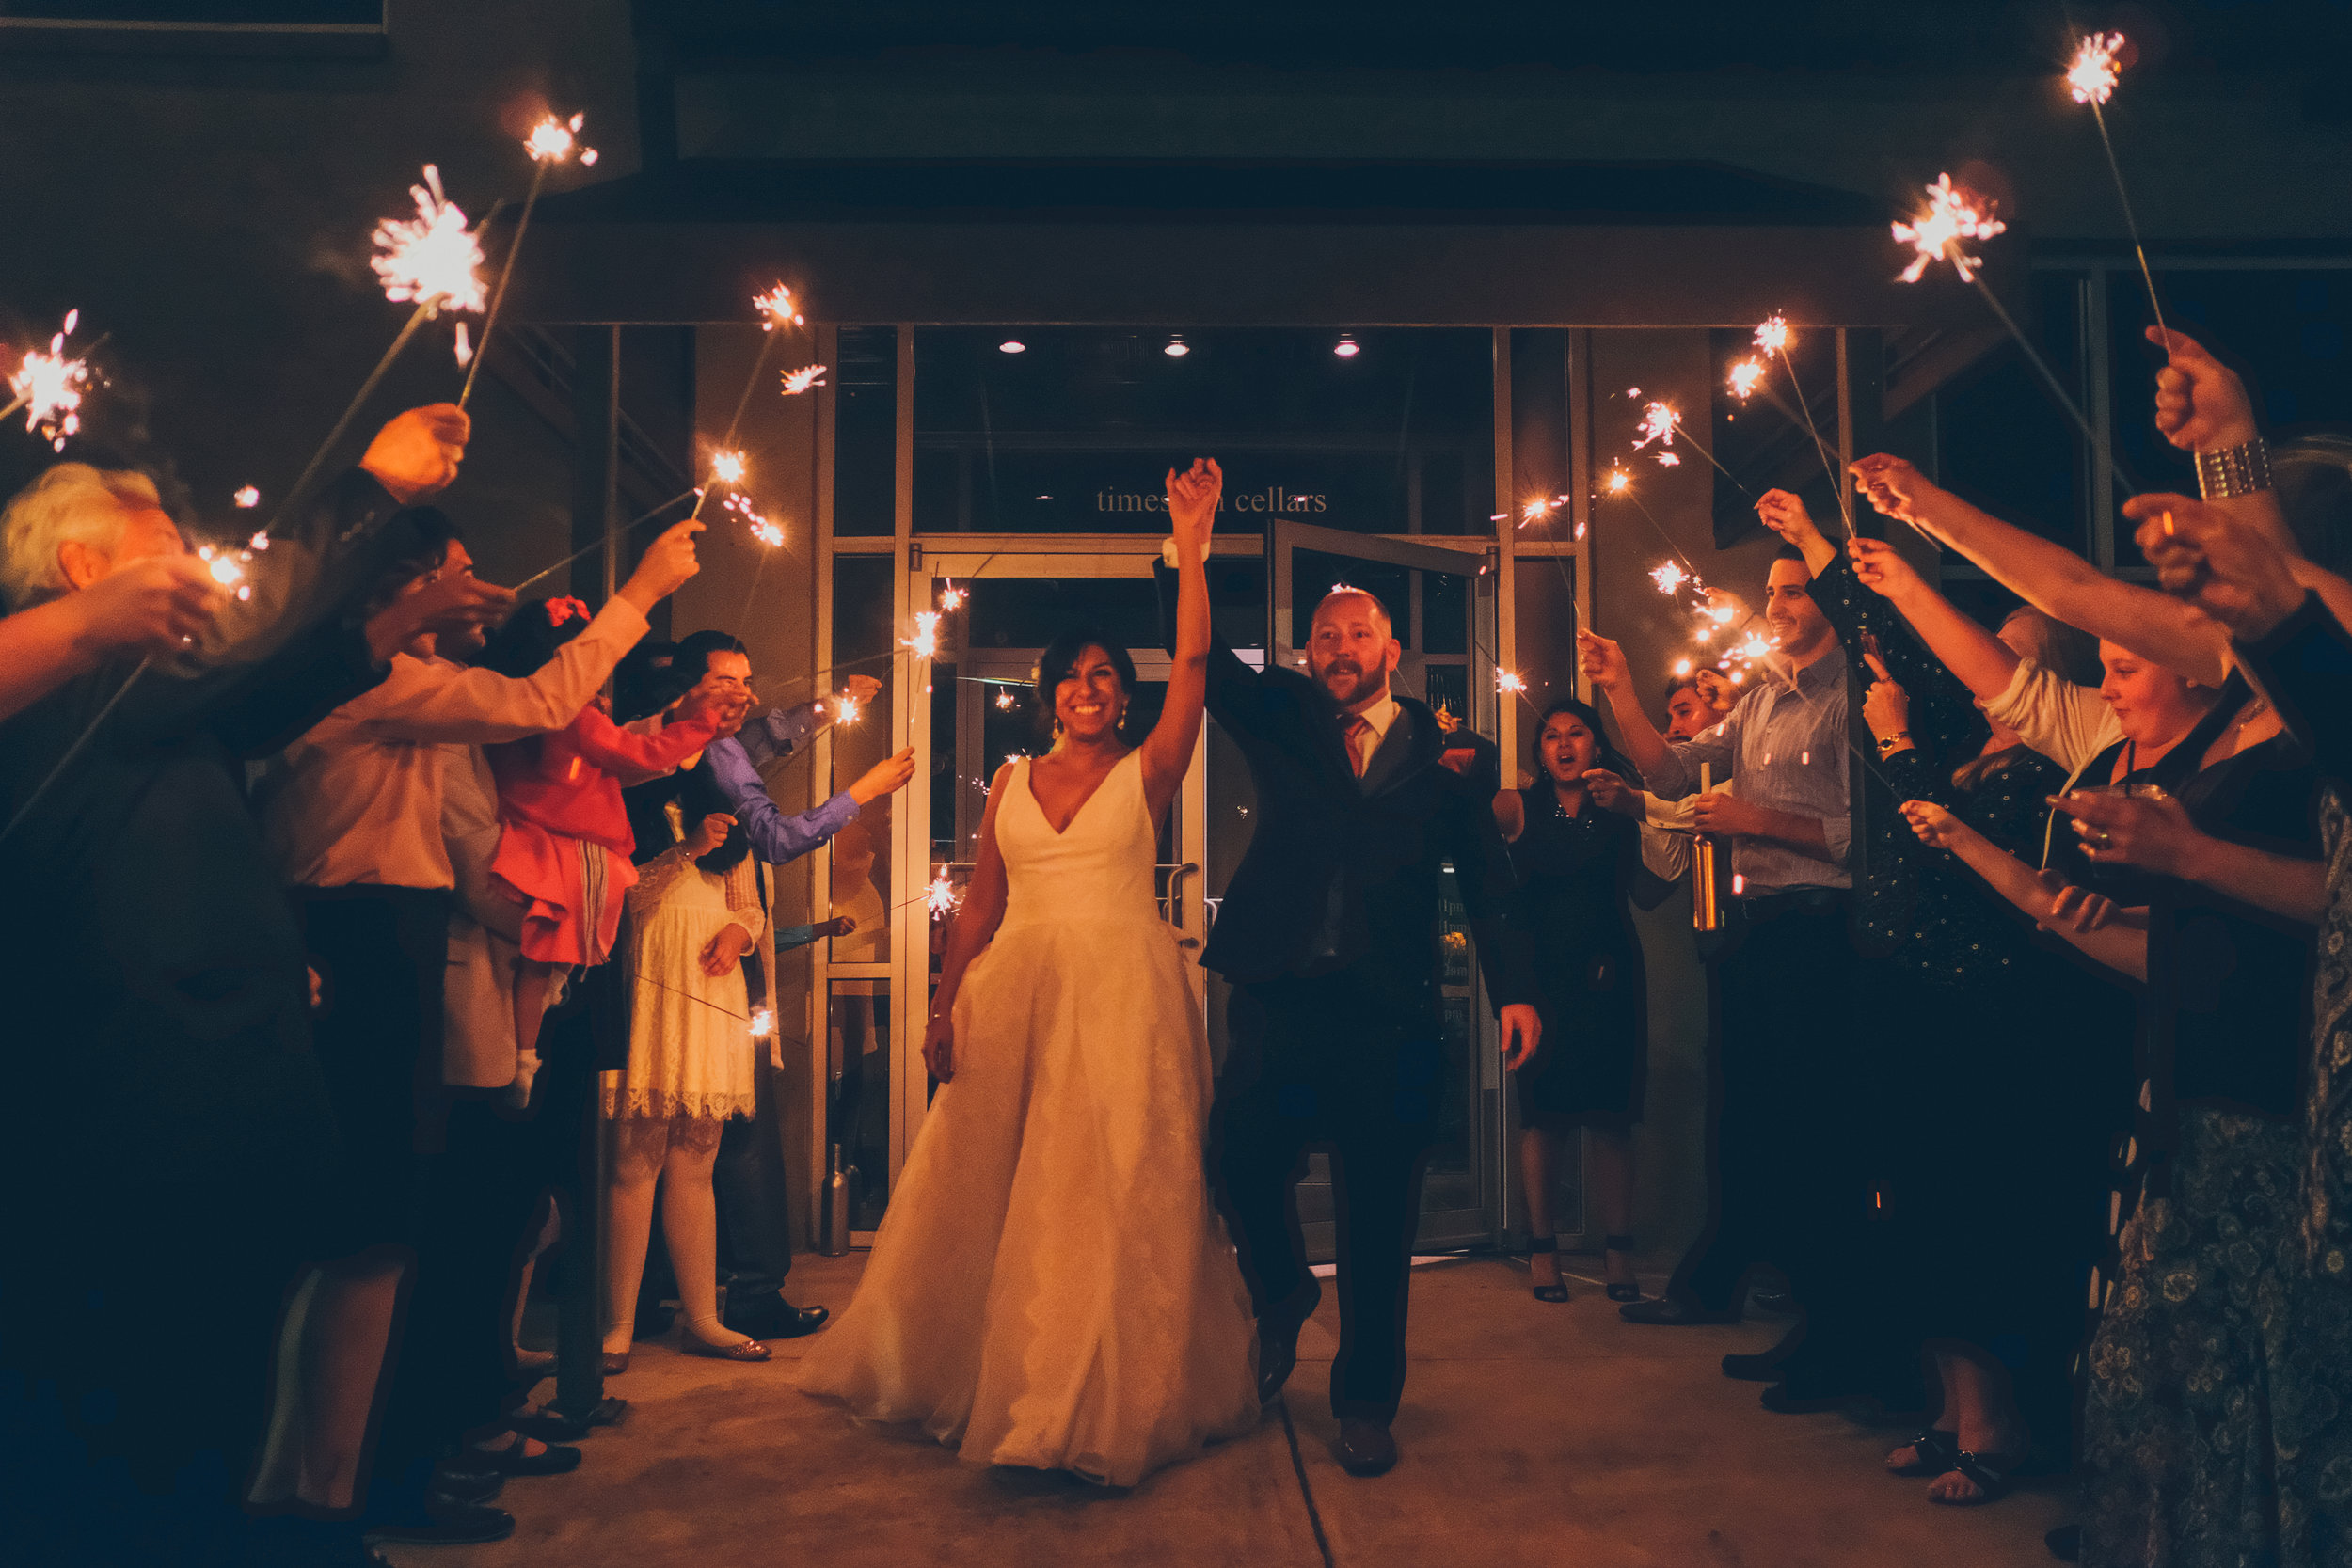 Bride and groom exiting the venue with hands raised while surrounded by sparklers at night time.